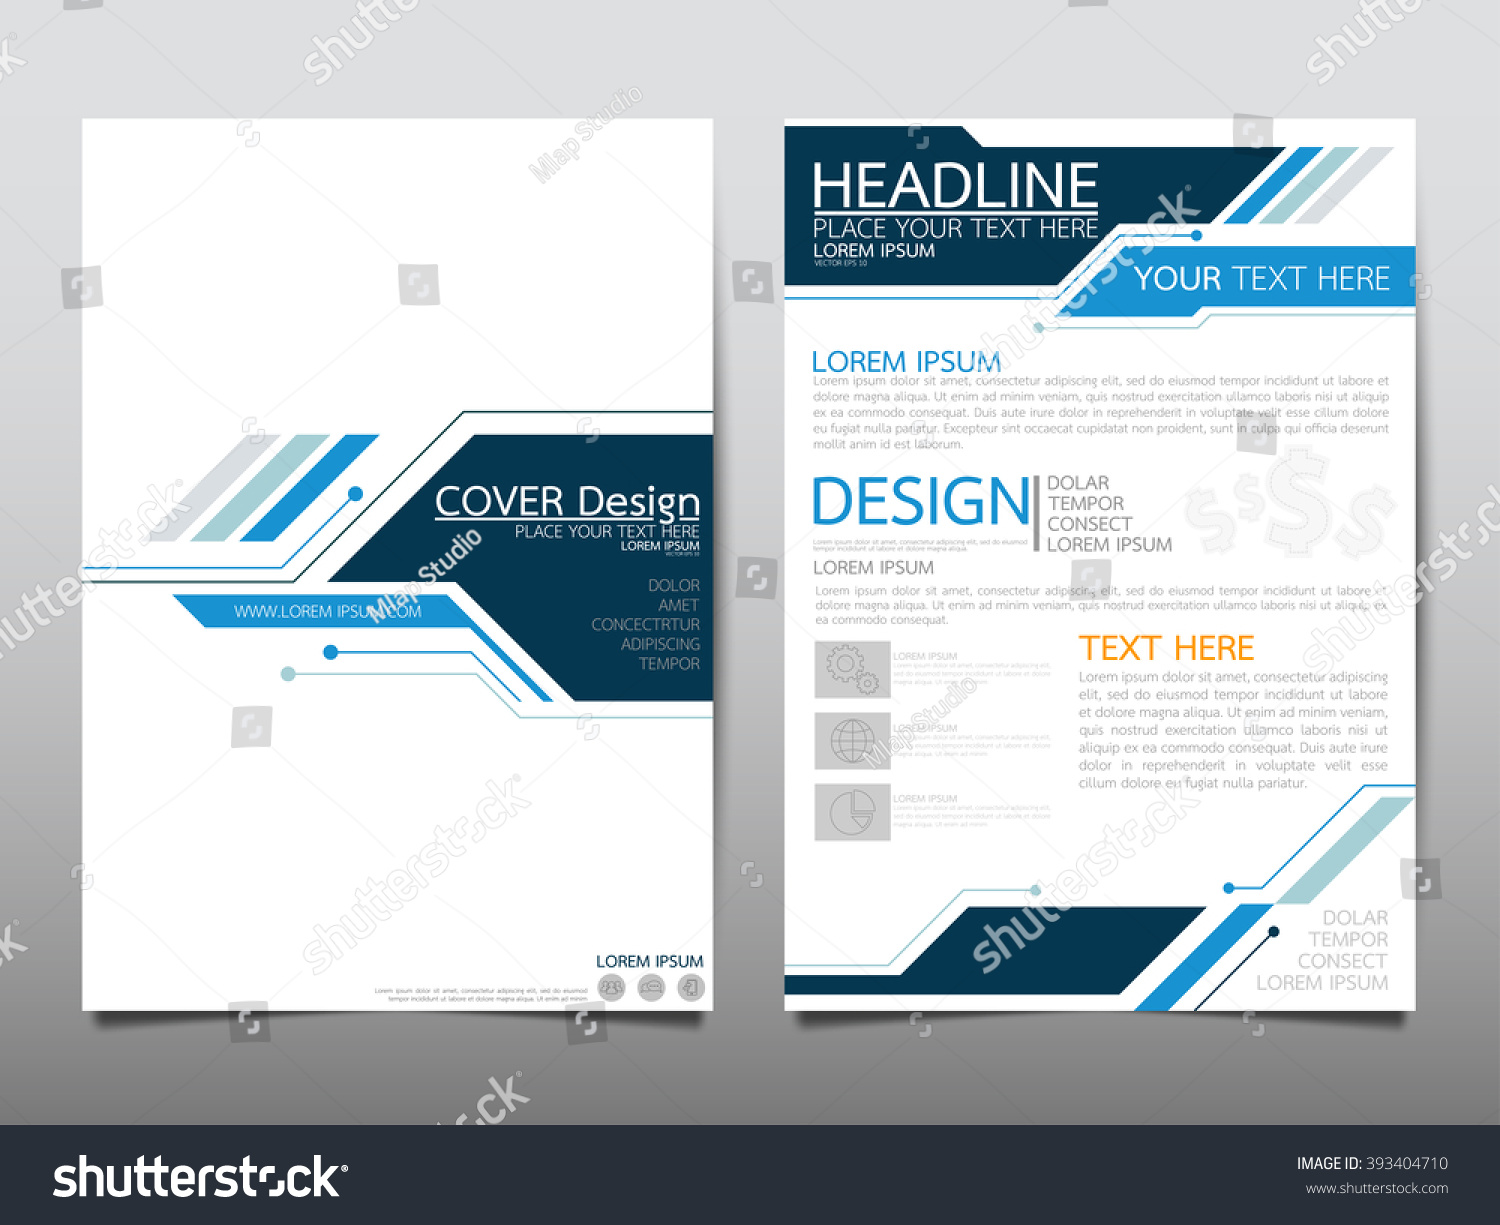 annual report brochure flyer design template stock vector annual report brochure flyer design template vector leaflet cover presentation abstract technology background layout